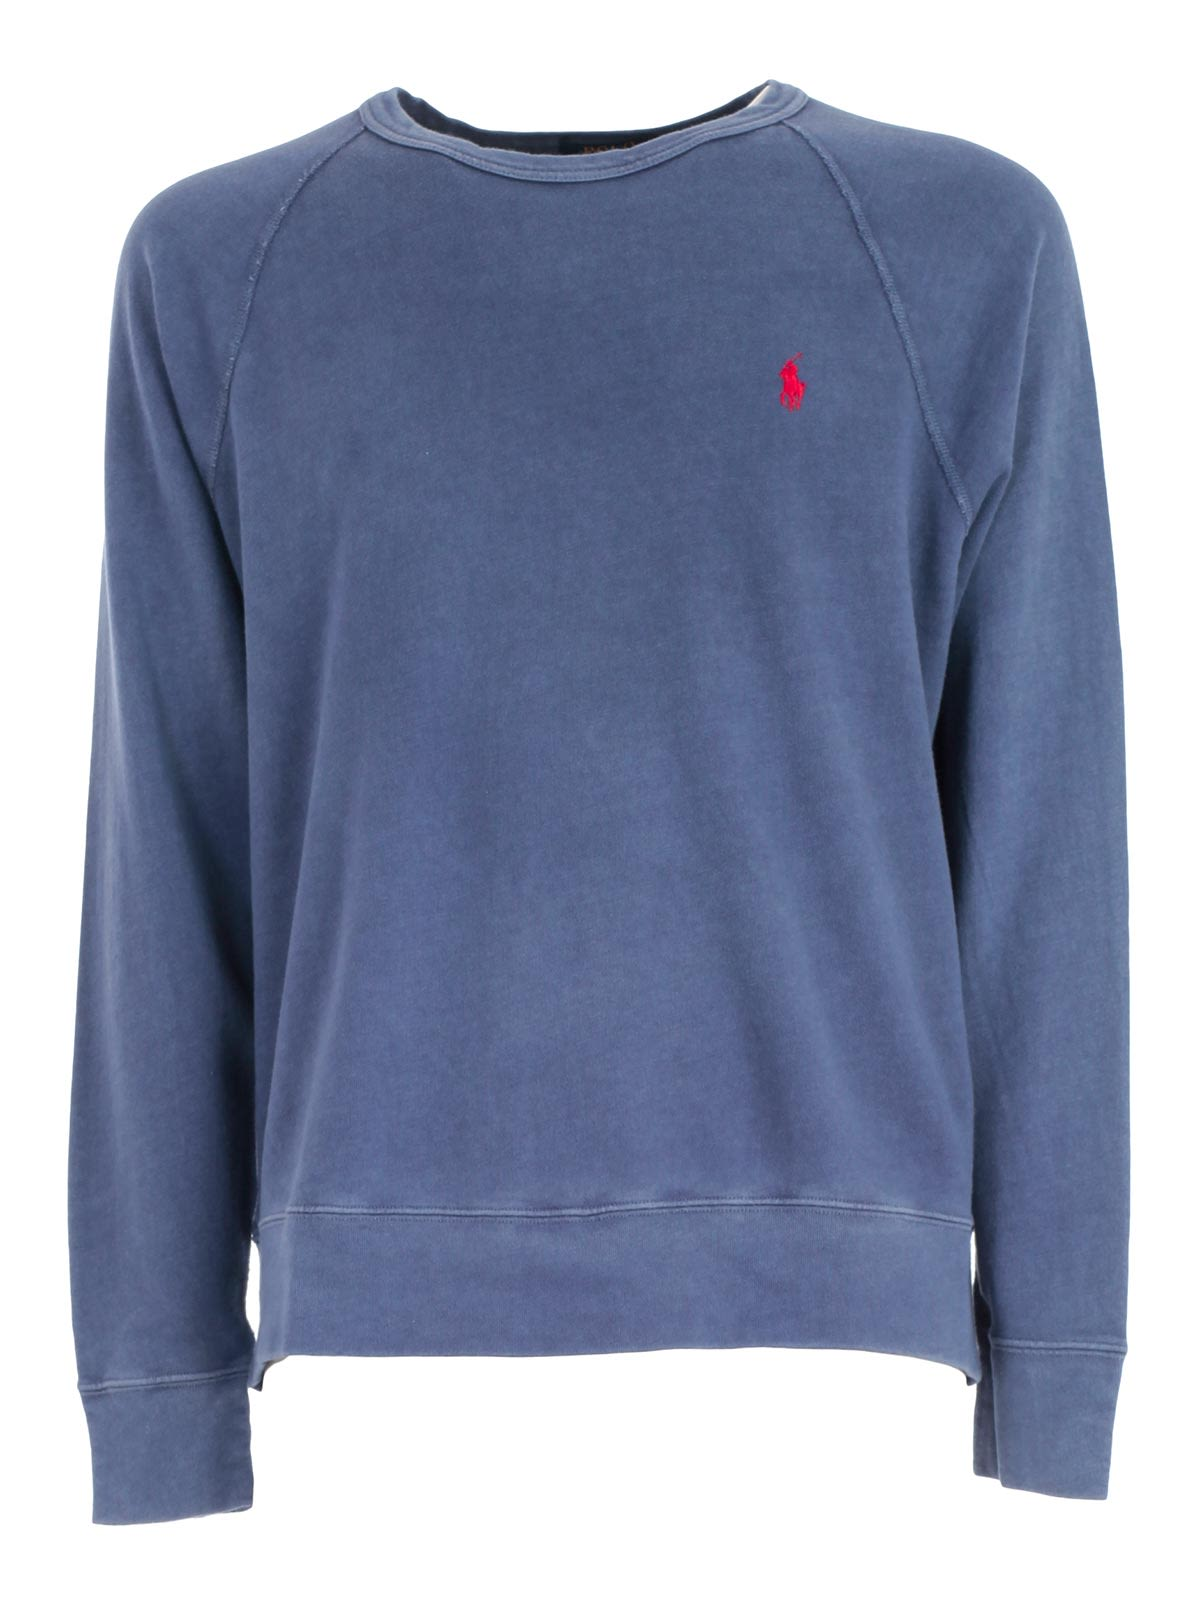 Polo Ralph Lauren Lightweight Sweatshirt